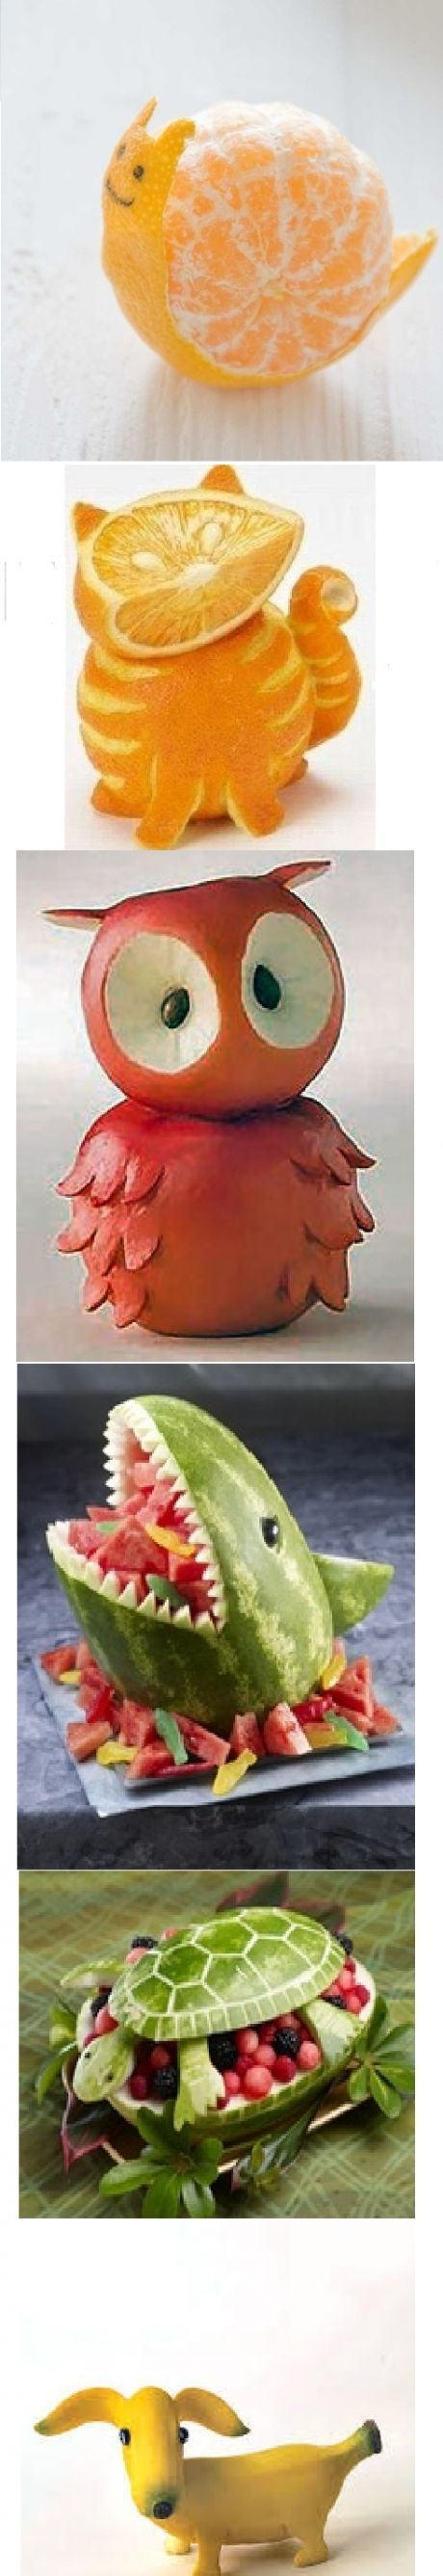 Fun Food Art: Ok the banana dog, orange tabby, and apple owl are figurines, not actual food.: